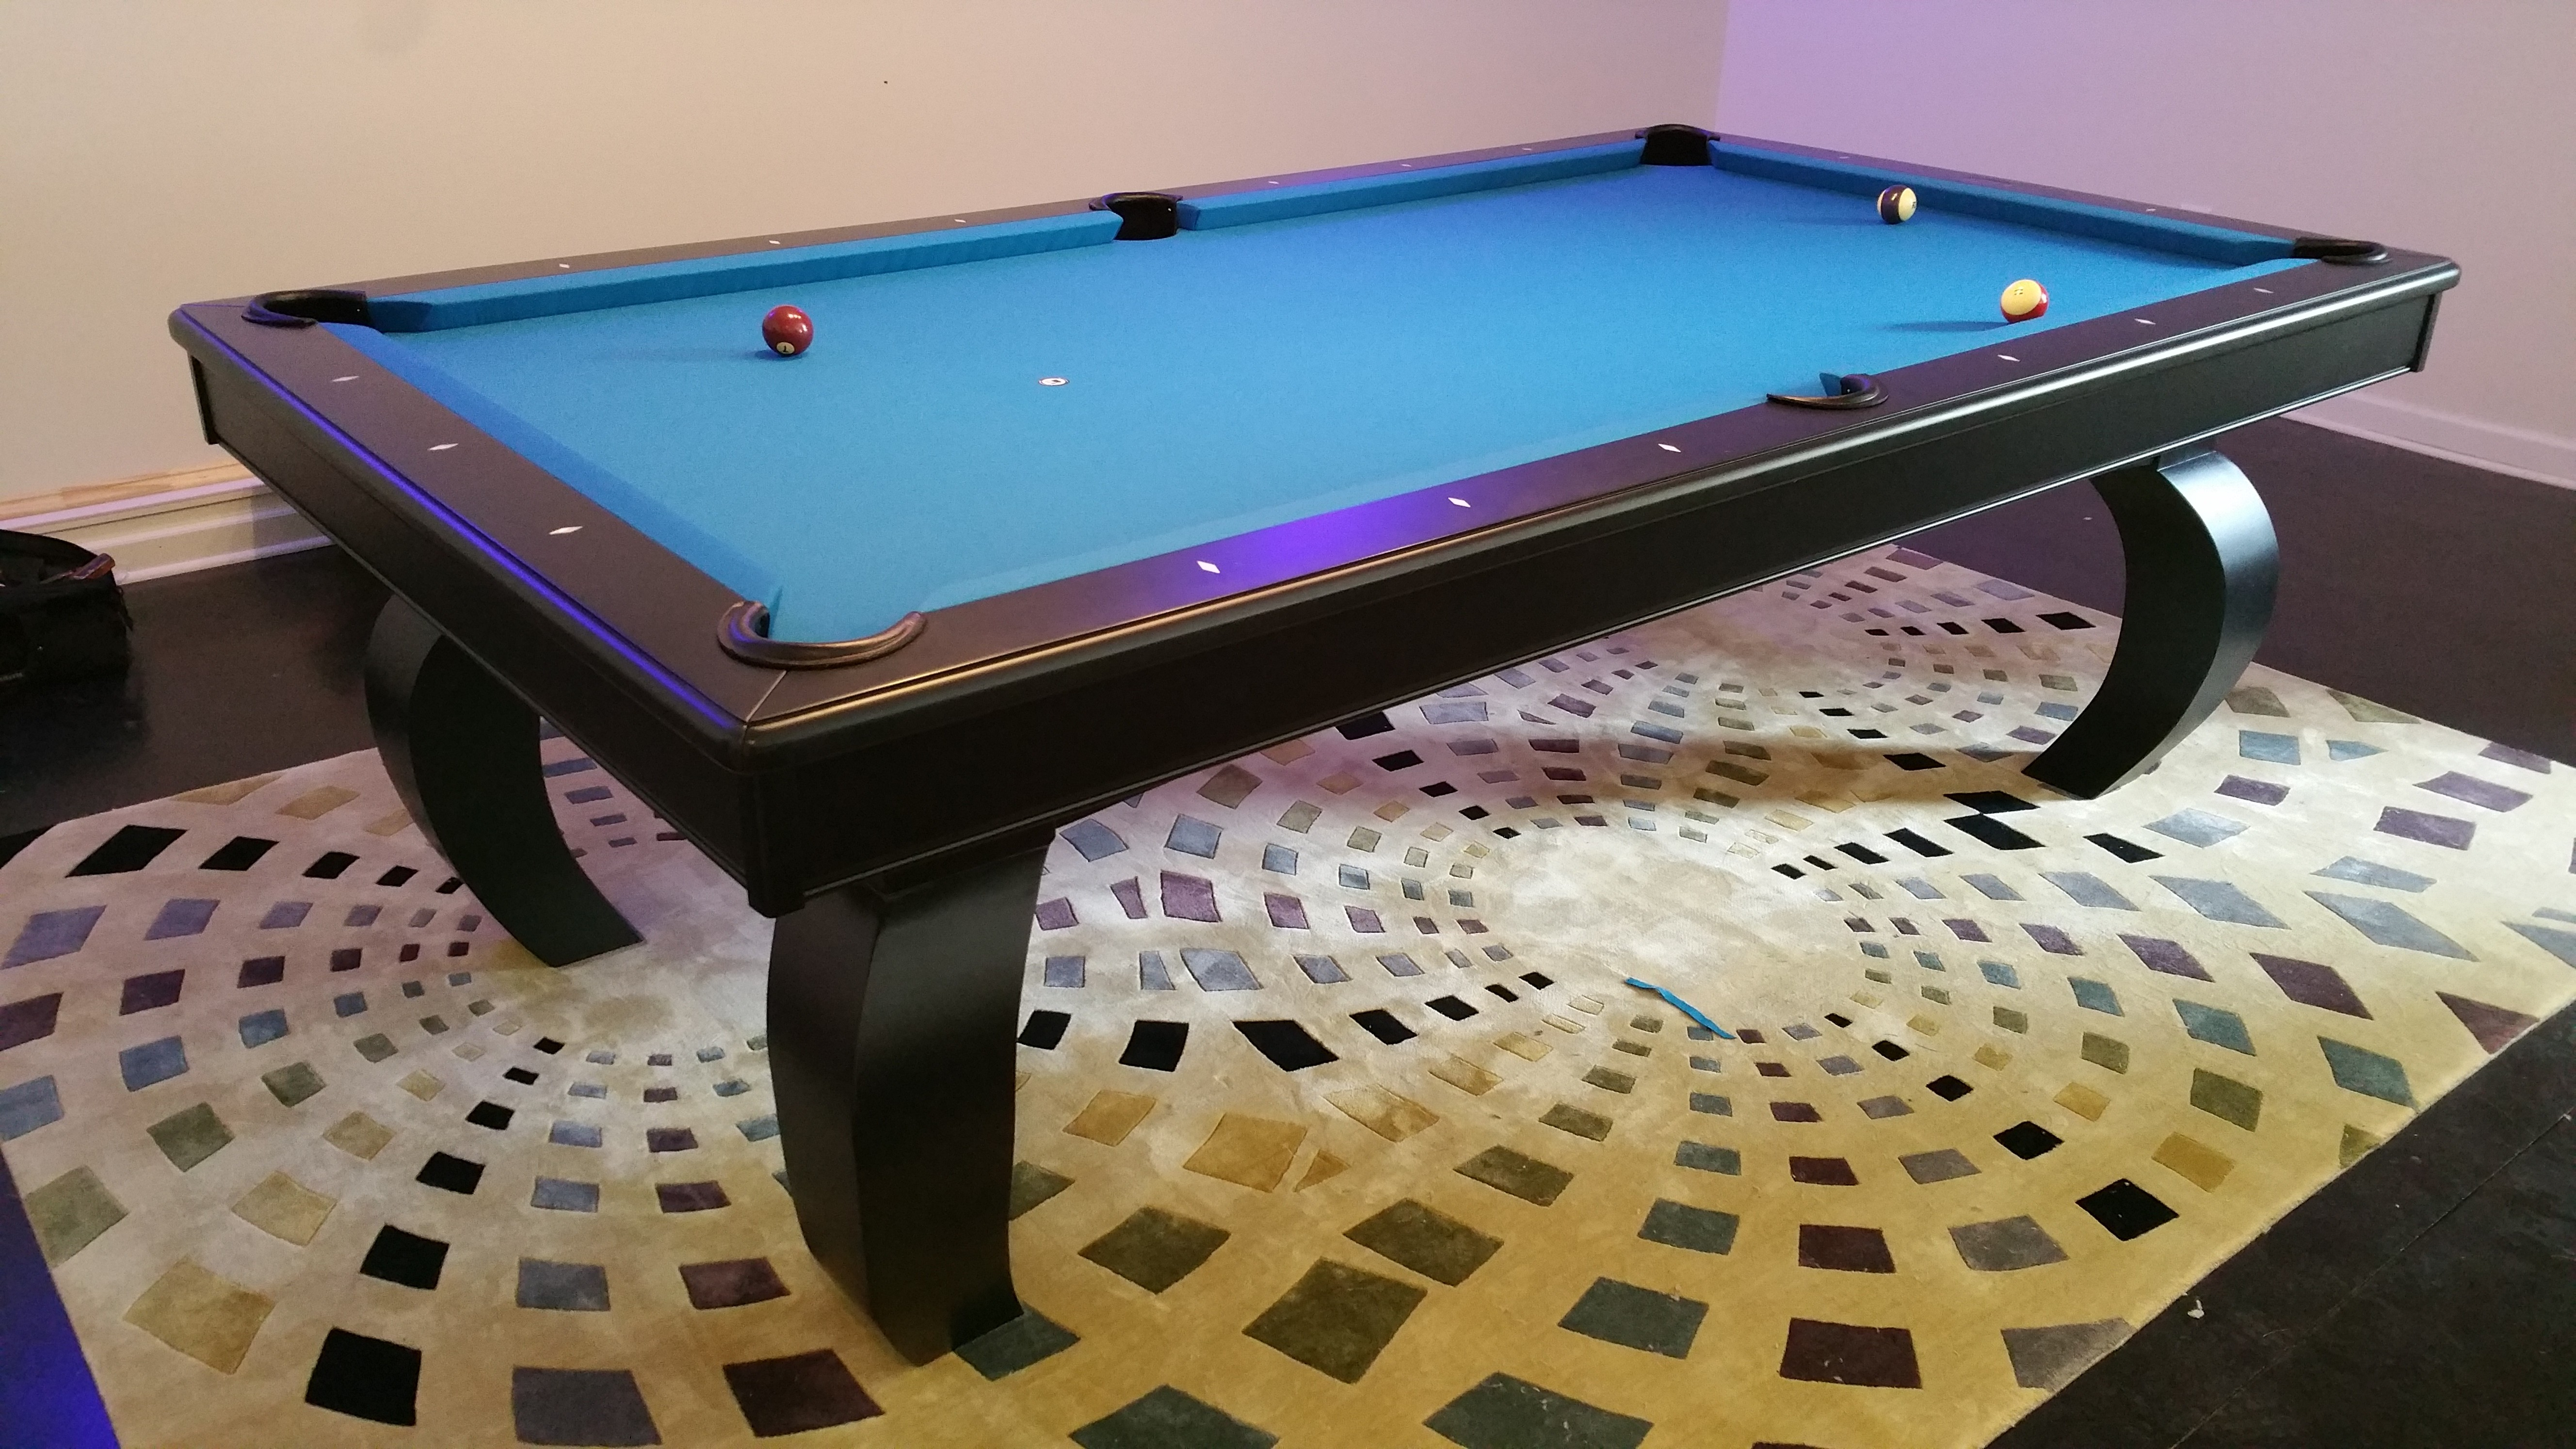 Excellent Pool Table Chalkboard WK Advancedmassagebysara - Ideal room size for pool table